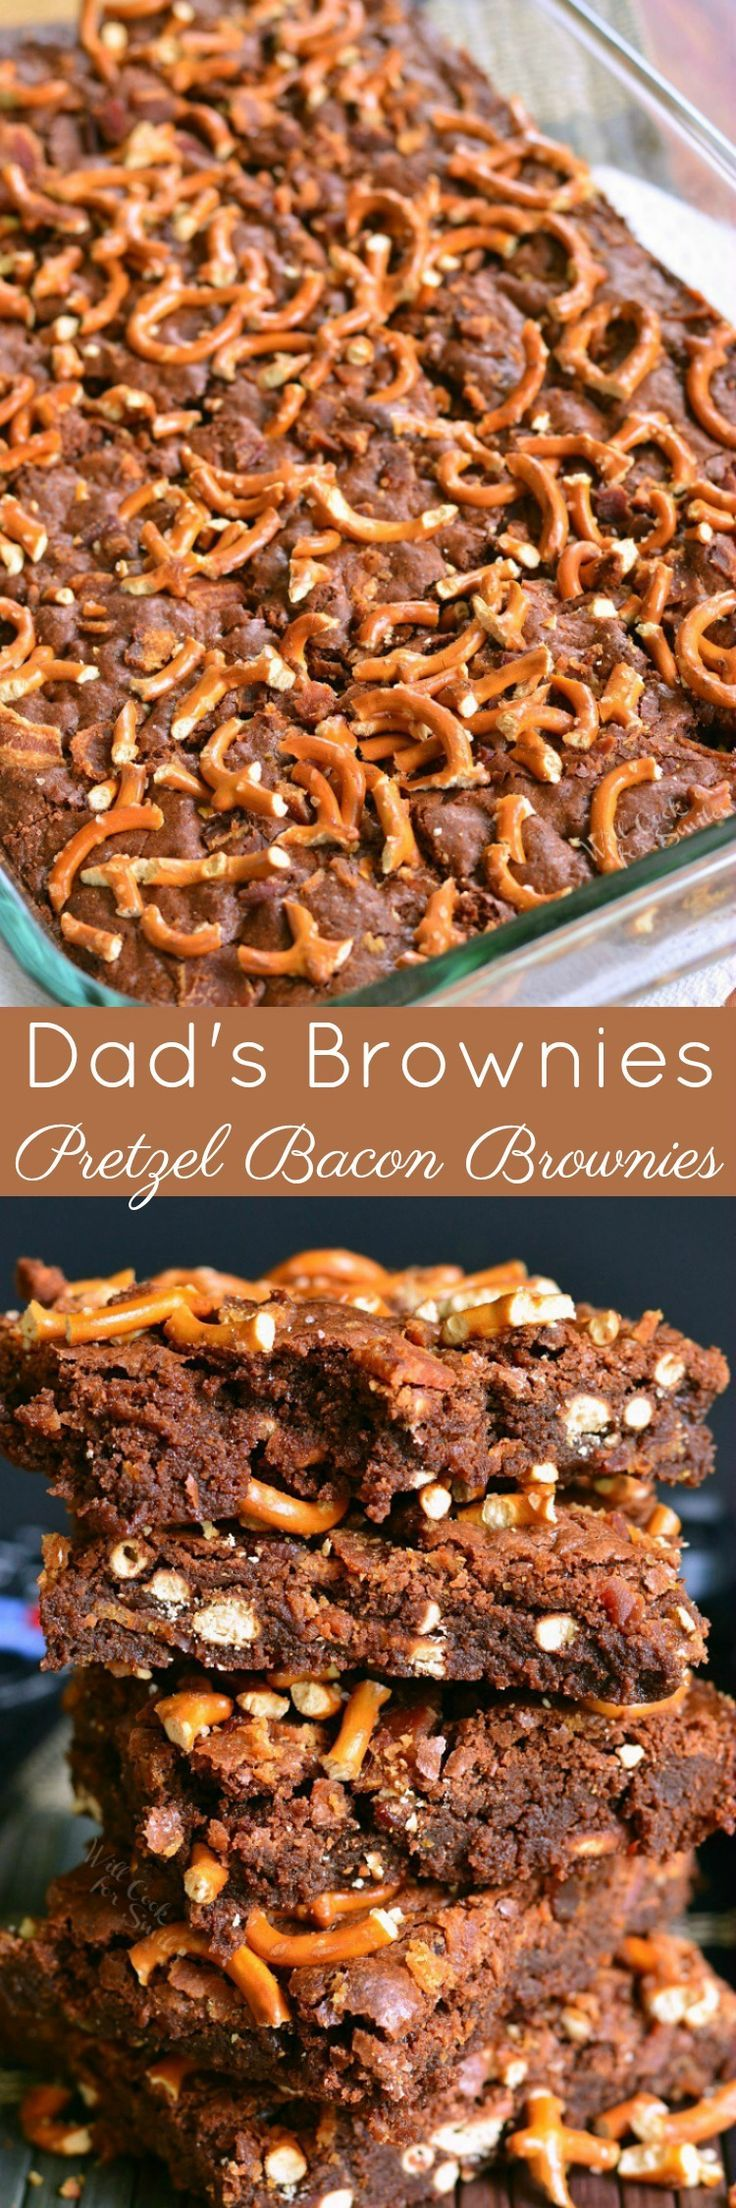 Dad's Brownies aka Pretzel Bacon Brownies. Soft, moist, sweet and salty bacon brownies that will make any dad's dreams come true.(Summer Bake Goods)